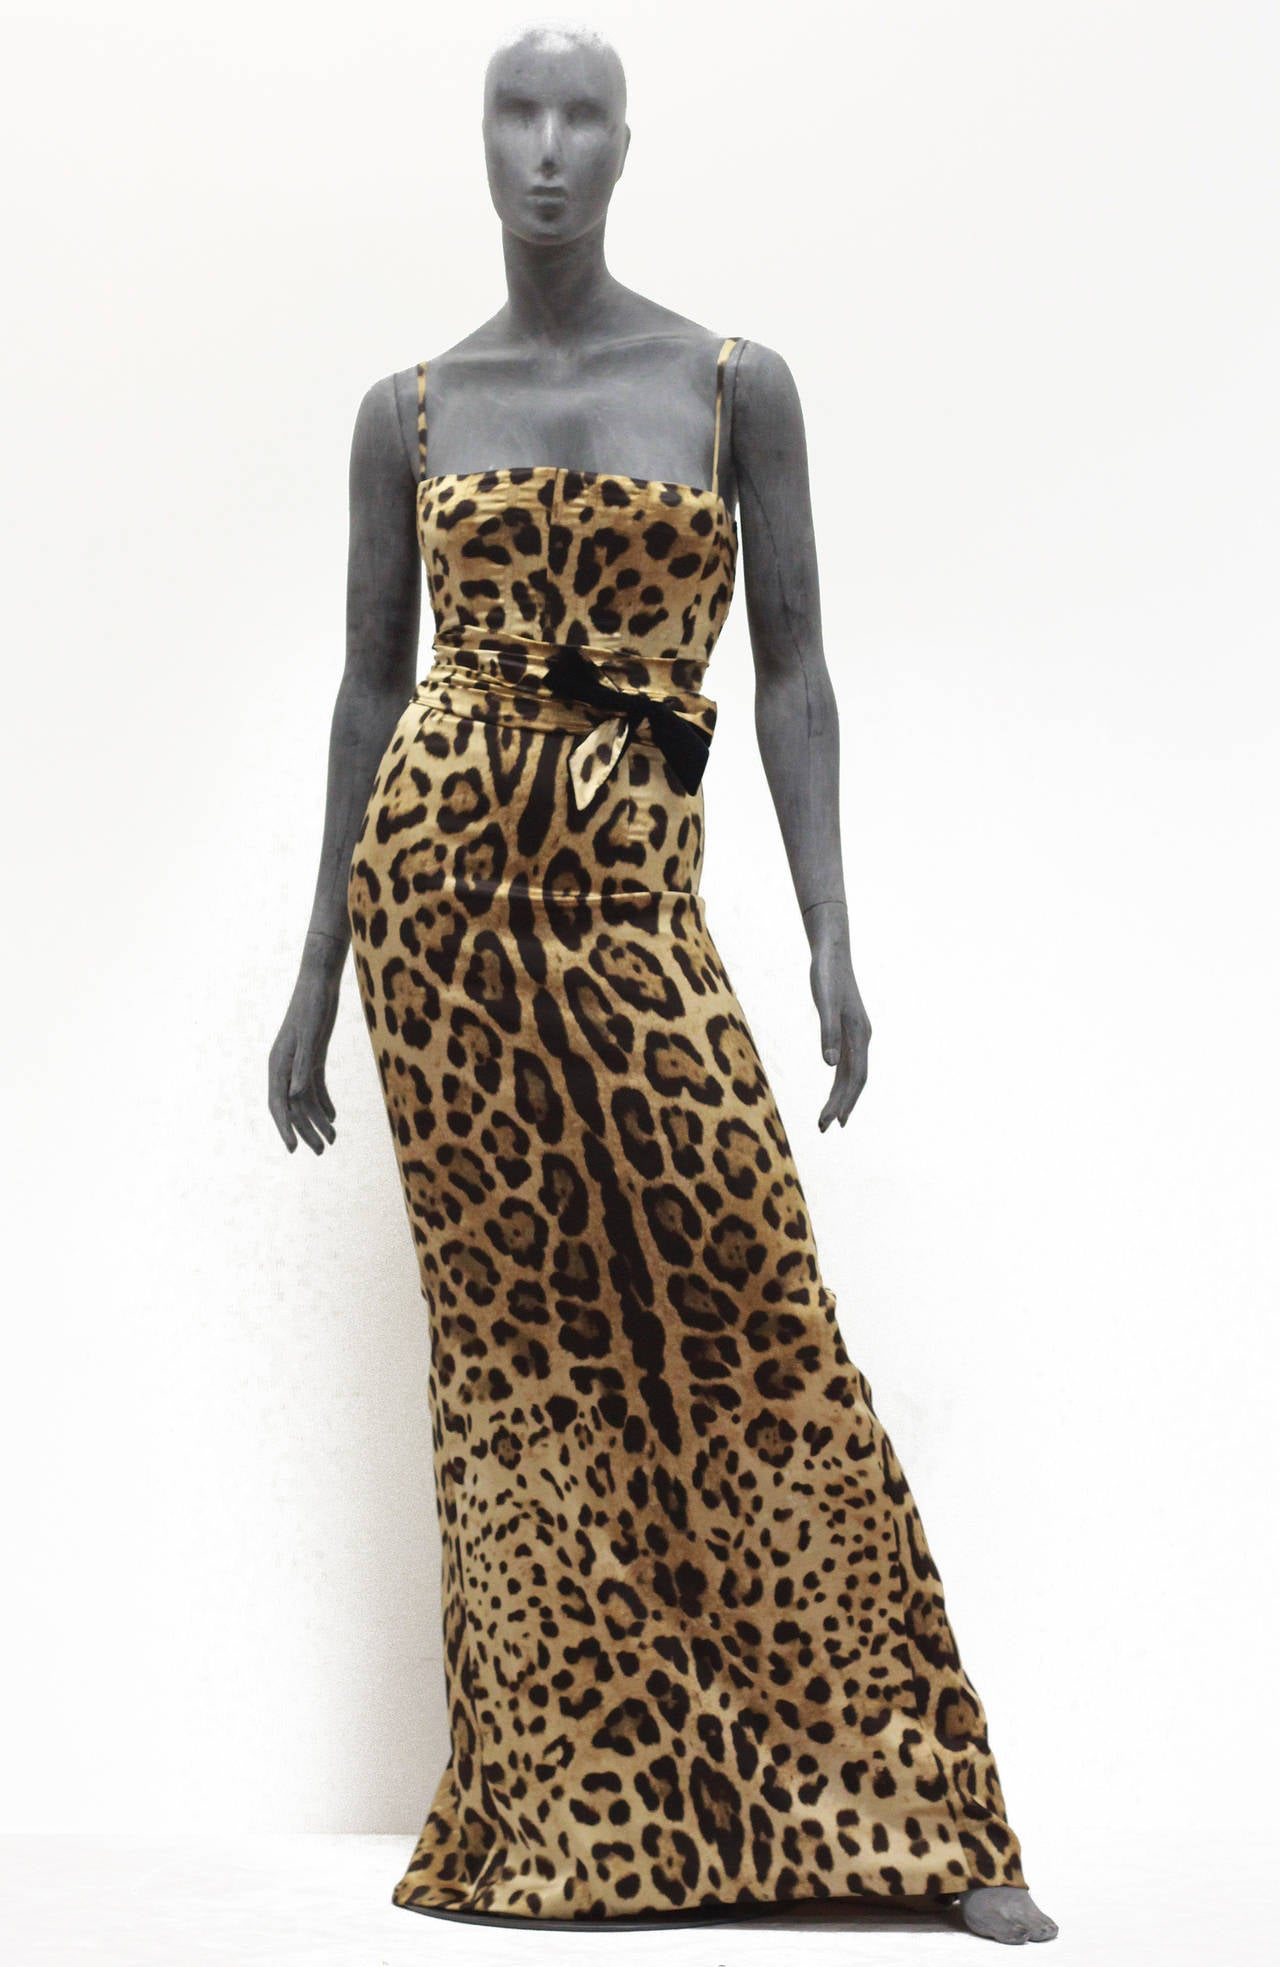 A Beautiful Ed Dolce Gabbana Evening Dress In Silk Leopard Print Through Out The